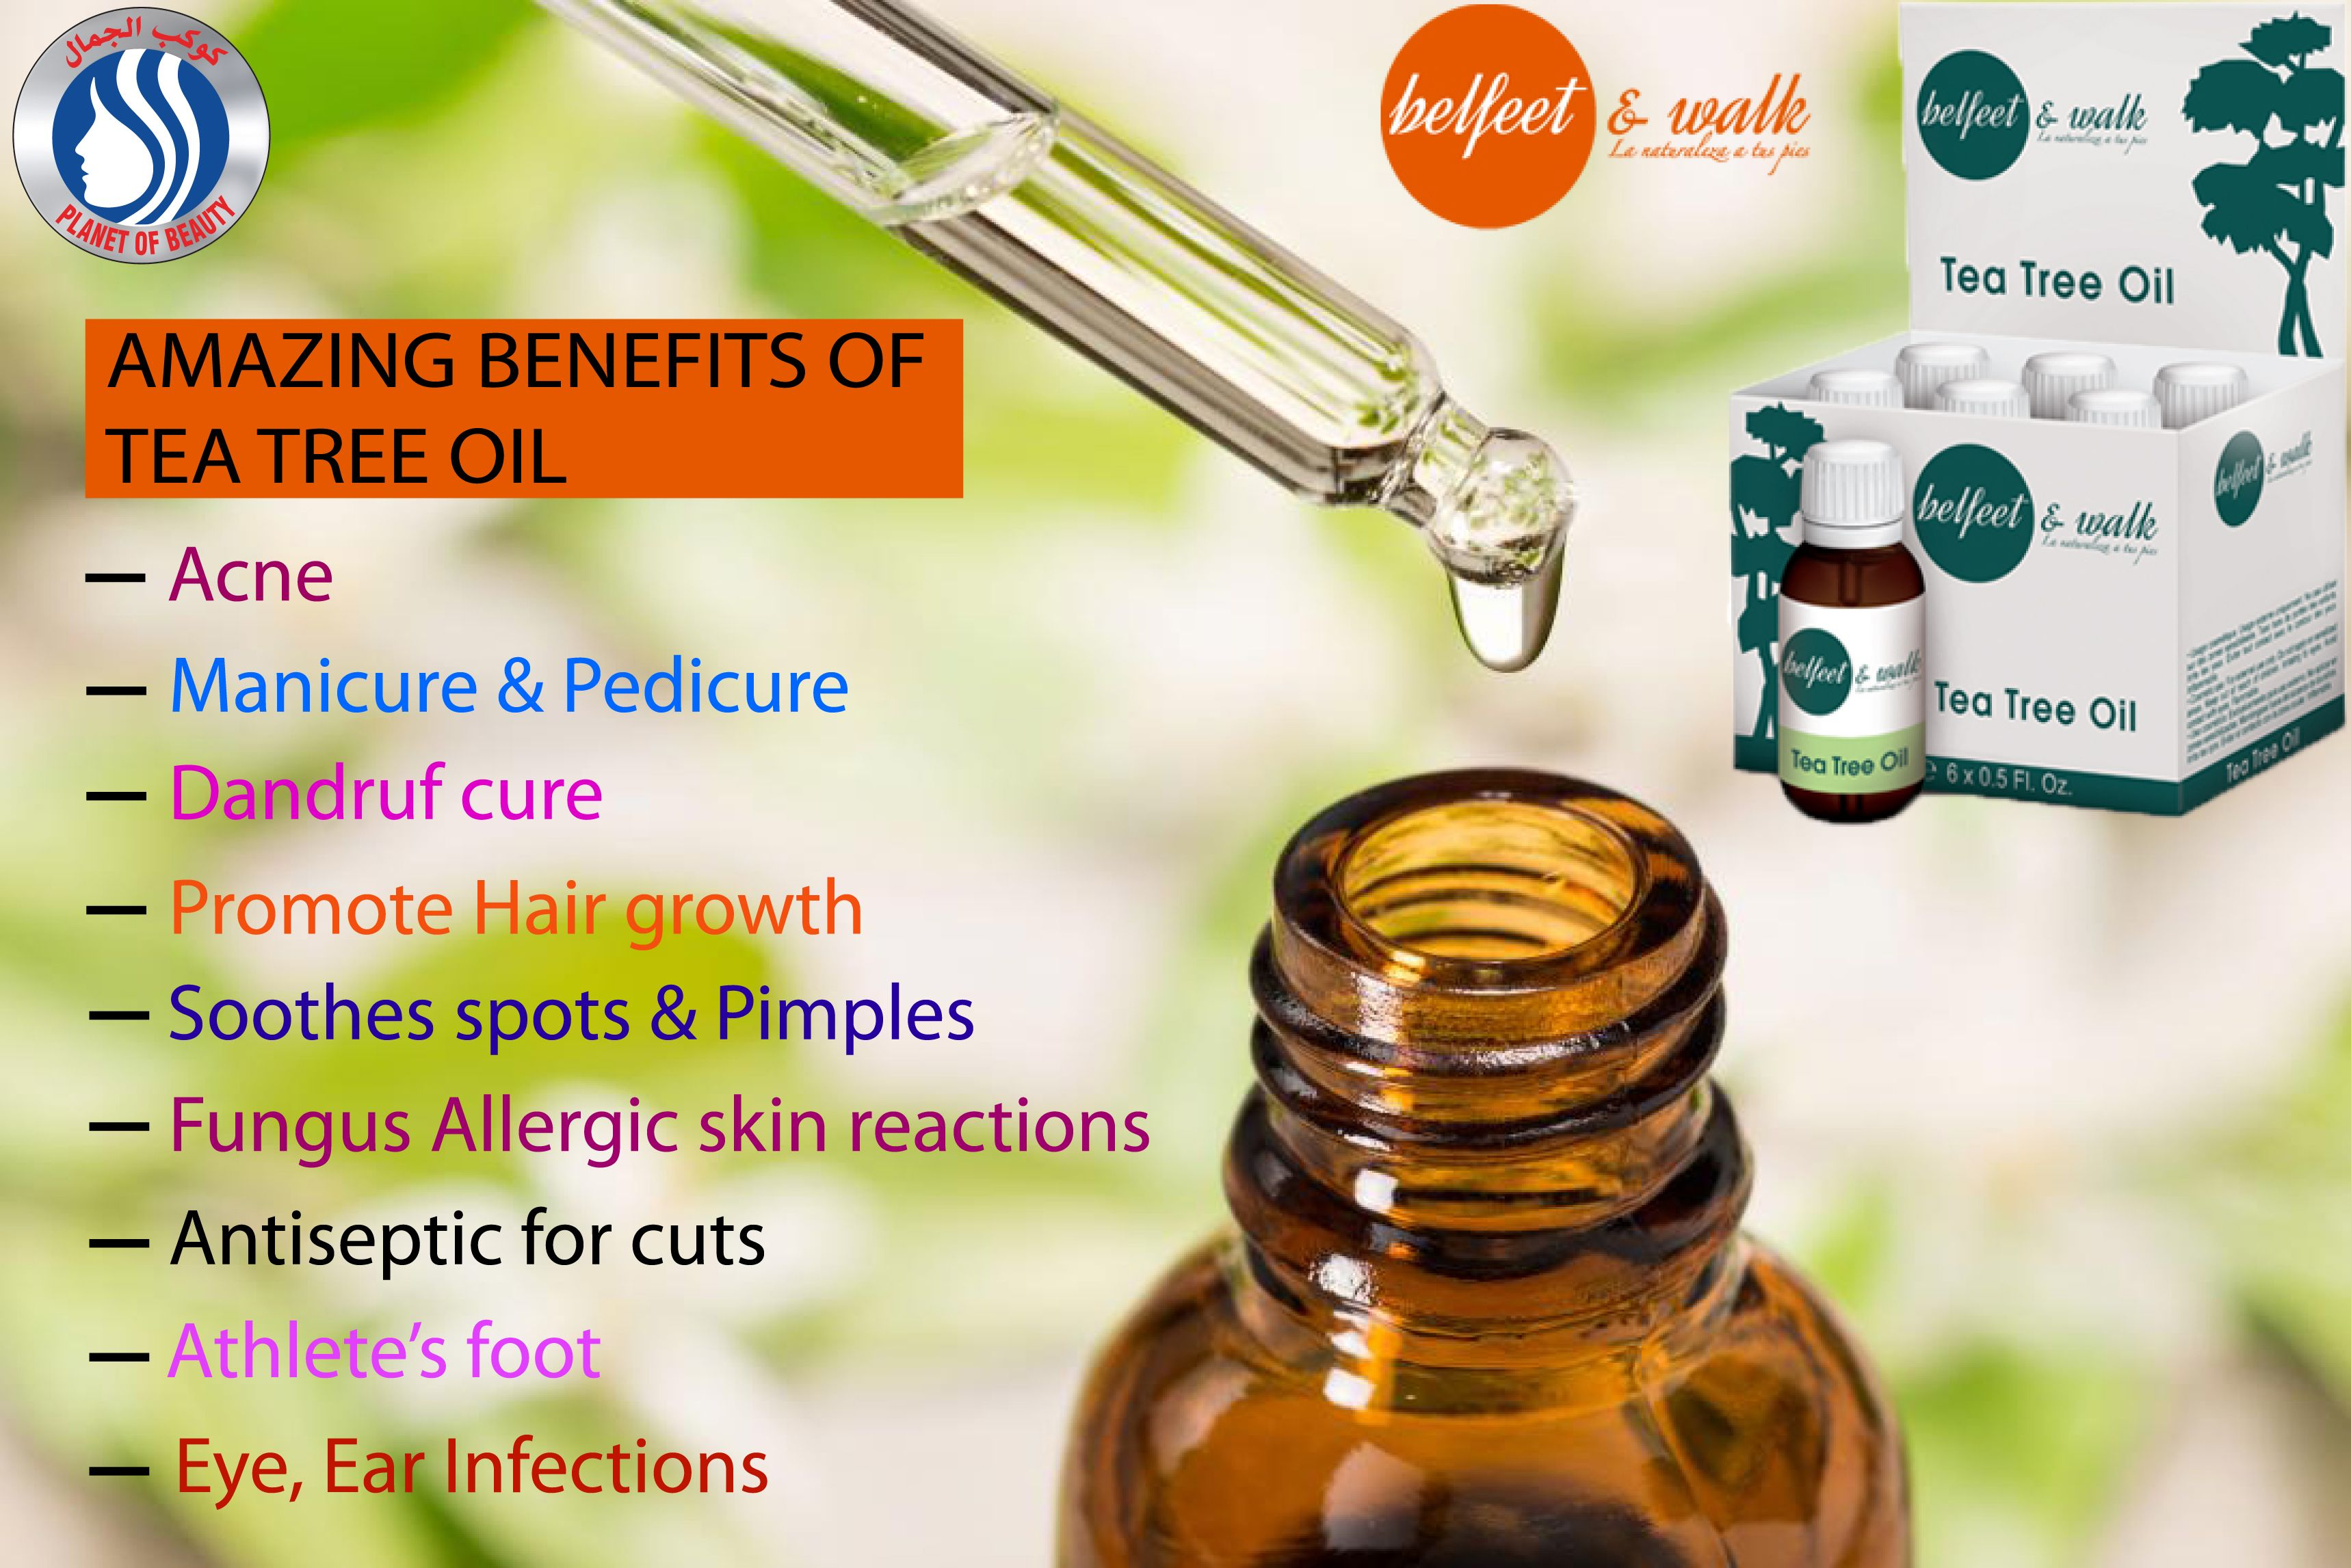 Belfeet Tea Tree Oil Tea Tree Oil Tree Oil Tea Tree